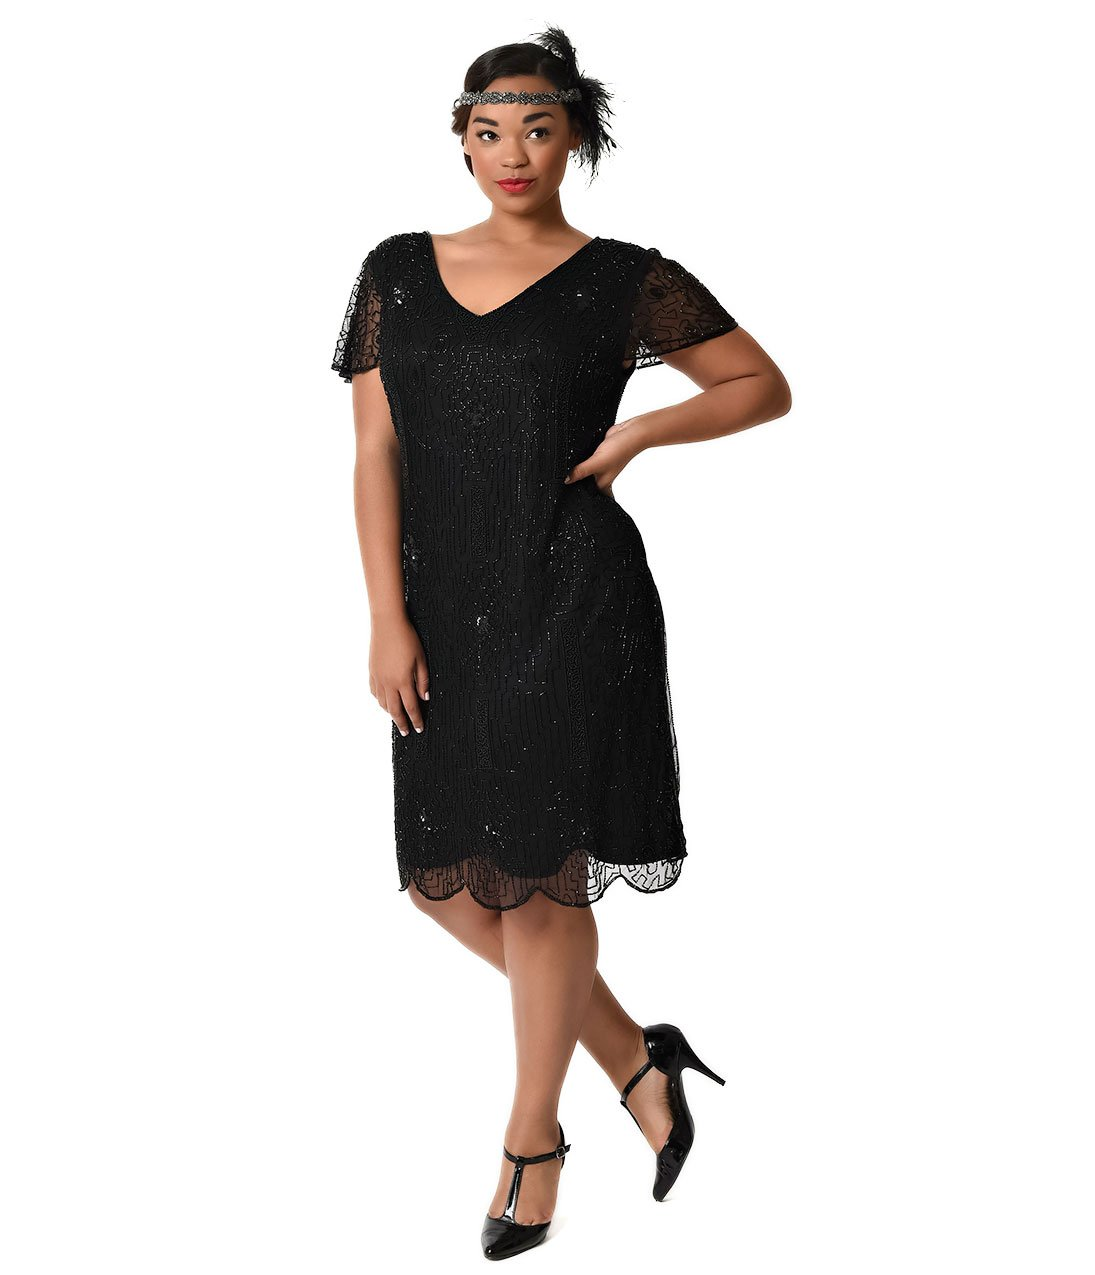 Plus Size 1920s Style Black Beaded Cap Sleeve Edwardian Flapper Dress by Unique Vintage